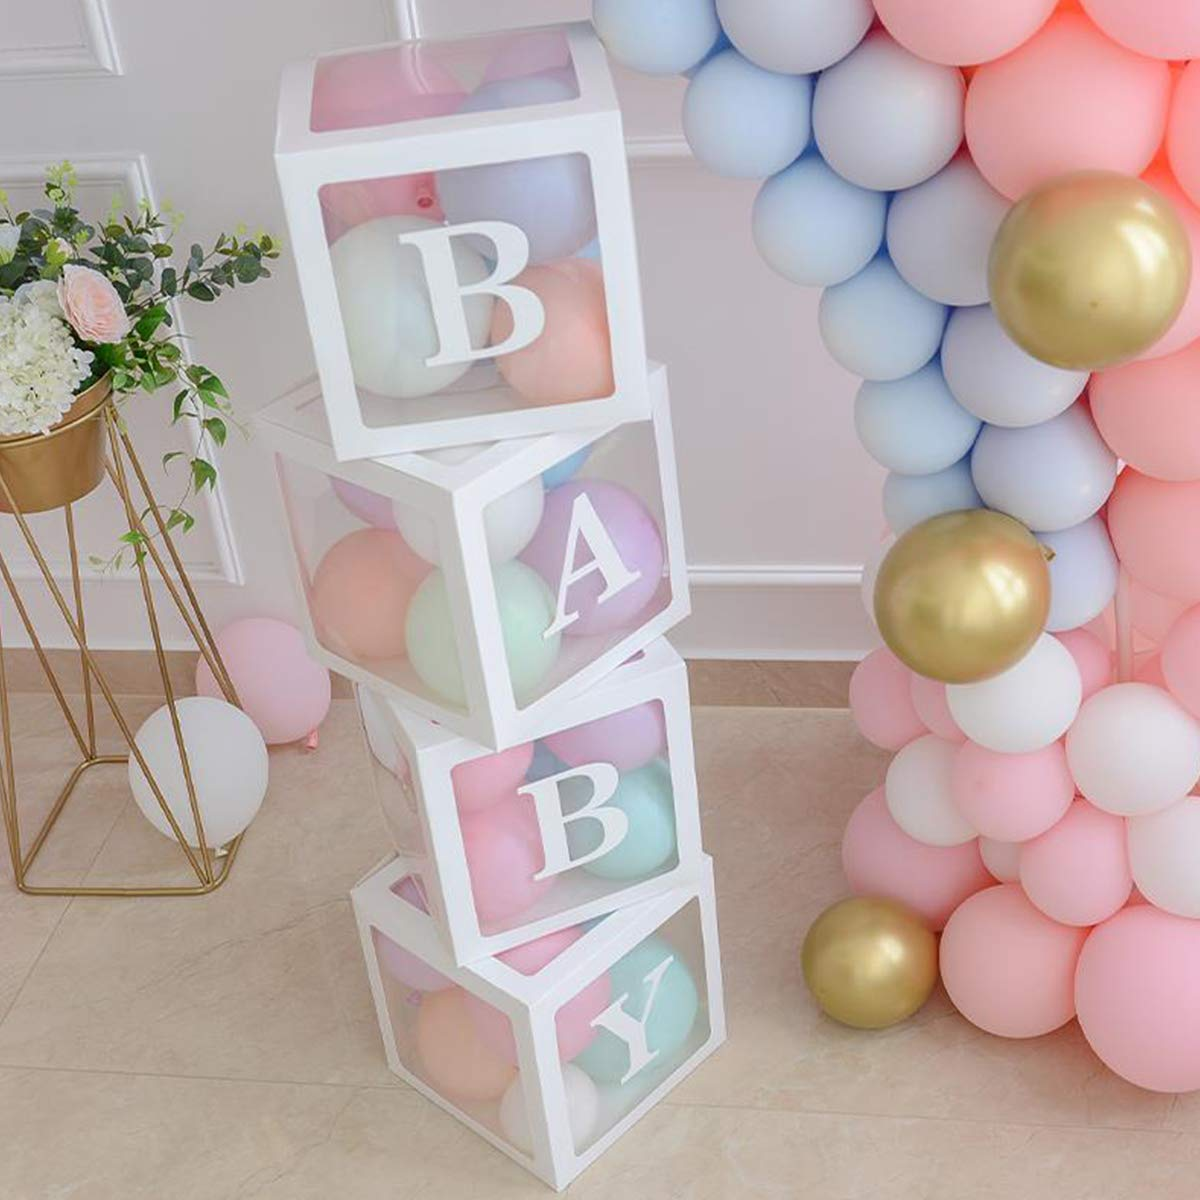 Baby Shower Boxes Party Decorations - 4 pcs Transparent Balloons Décor Boxes with Letter, Individual BABY Blocks Design for Boys Girls Baby Shower Bridal Showers Birthday Party Gender Reveal Backdrop by Mirooyu